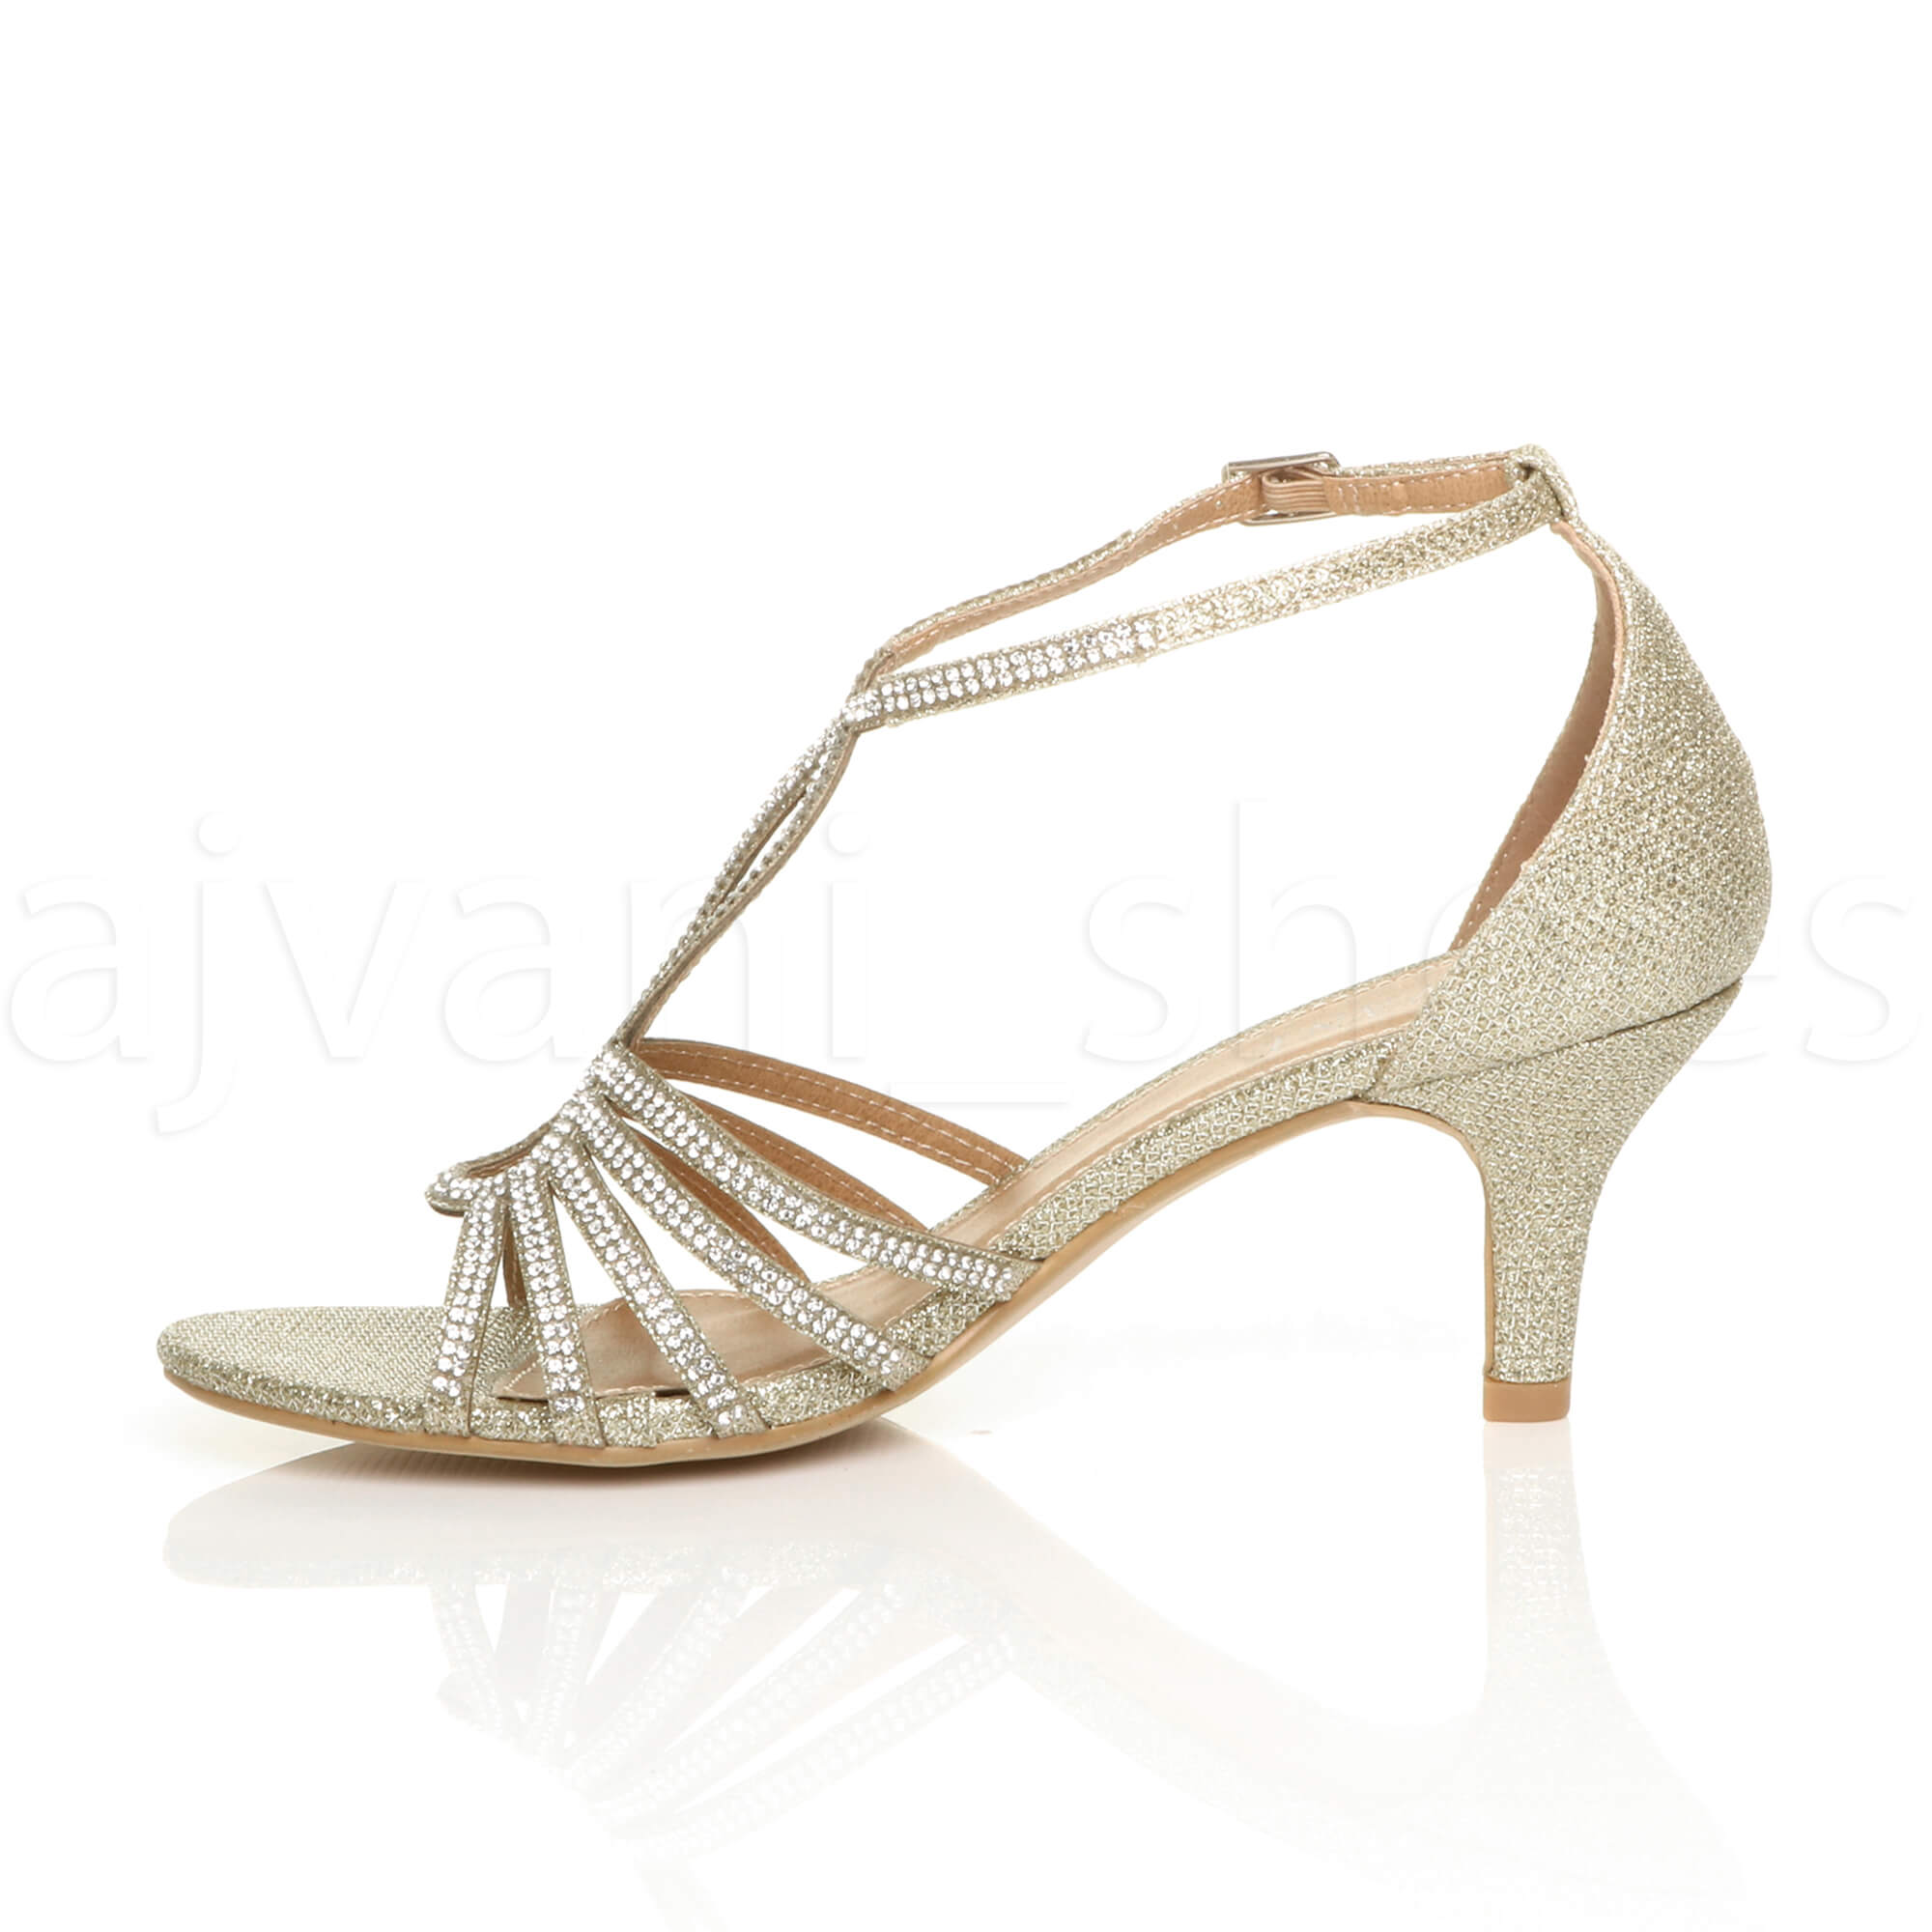 WOMENS-LADIES-MID-HEEL-STRAPPY-DIAMANTE-WEDDING-EVENING-T-BAR-SANDALS-SHOES-SIZE thumbnail 16